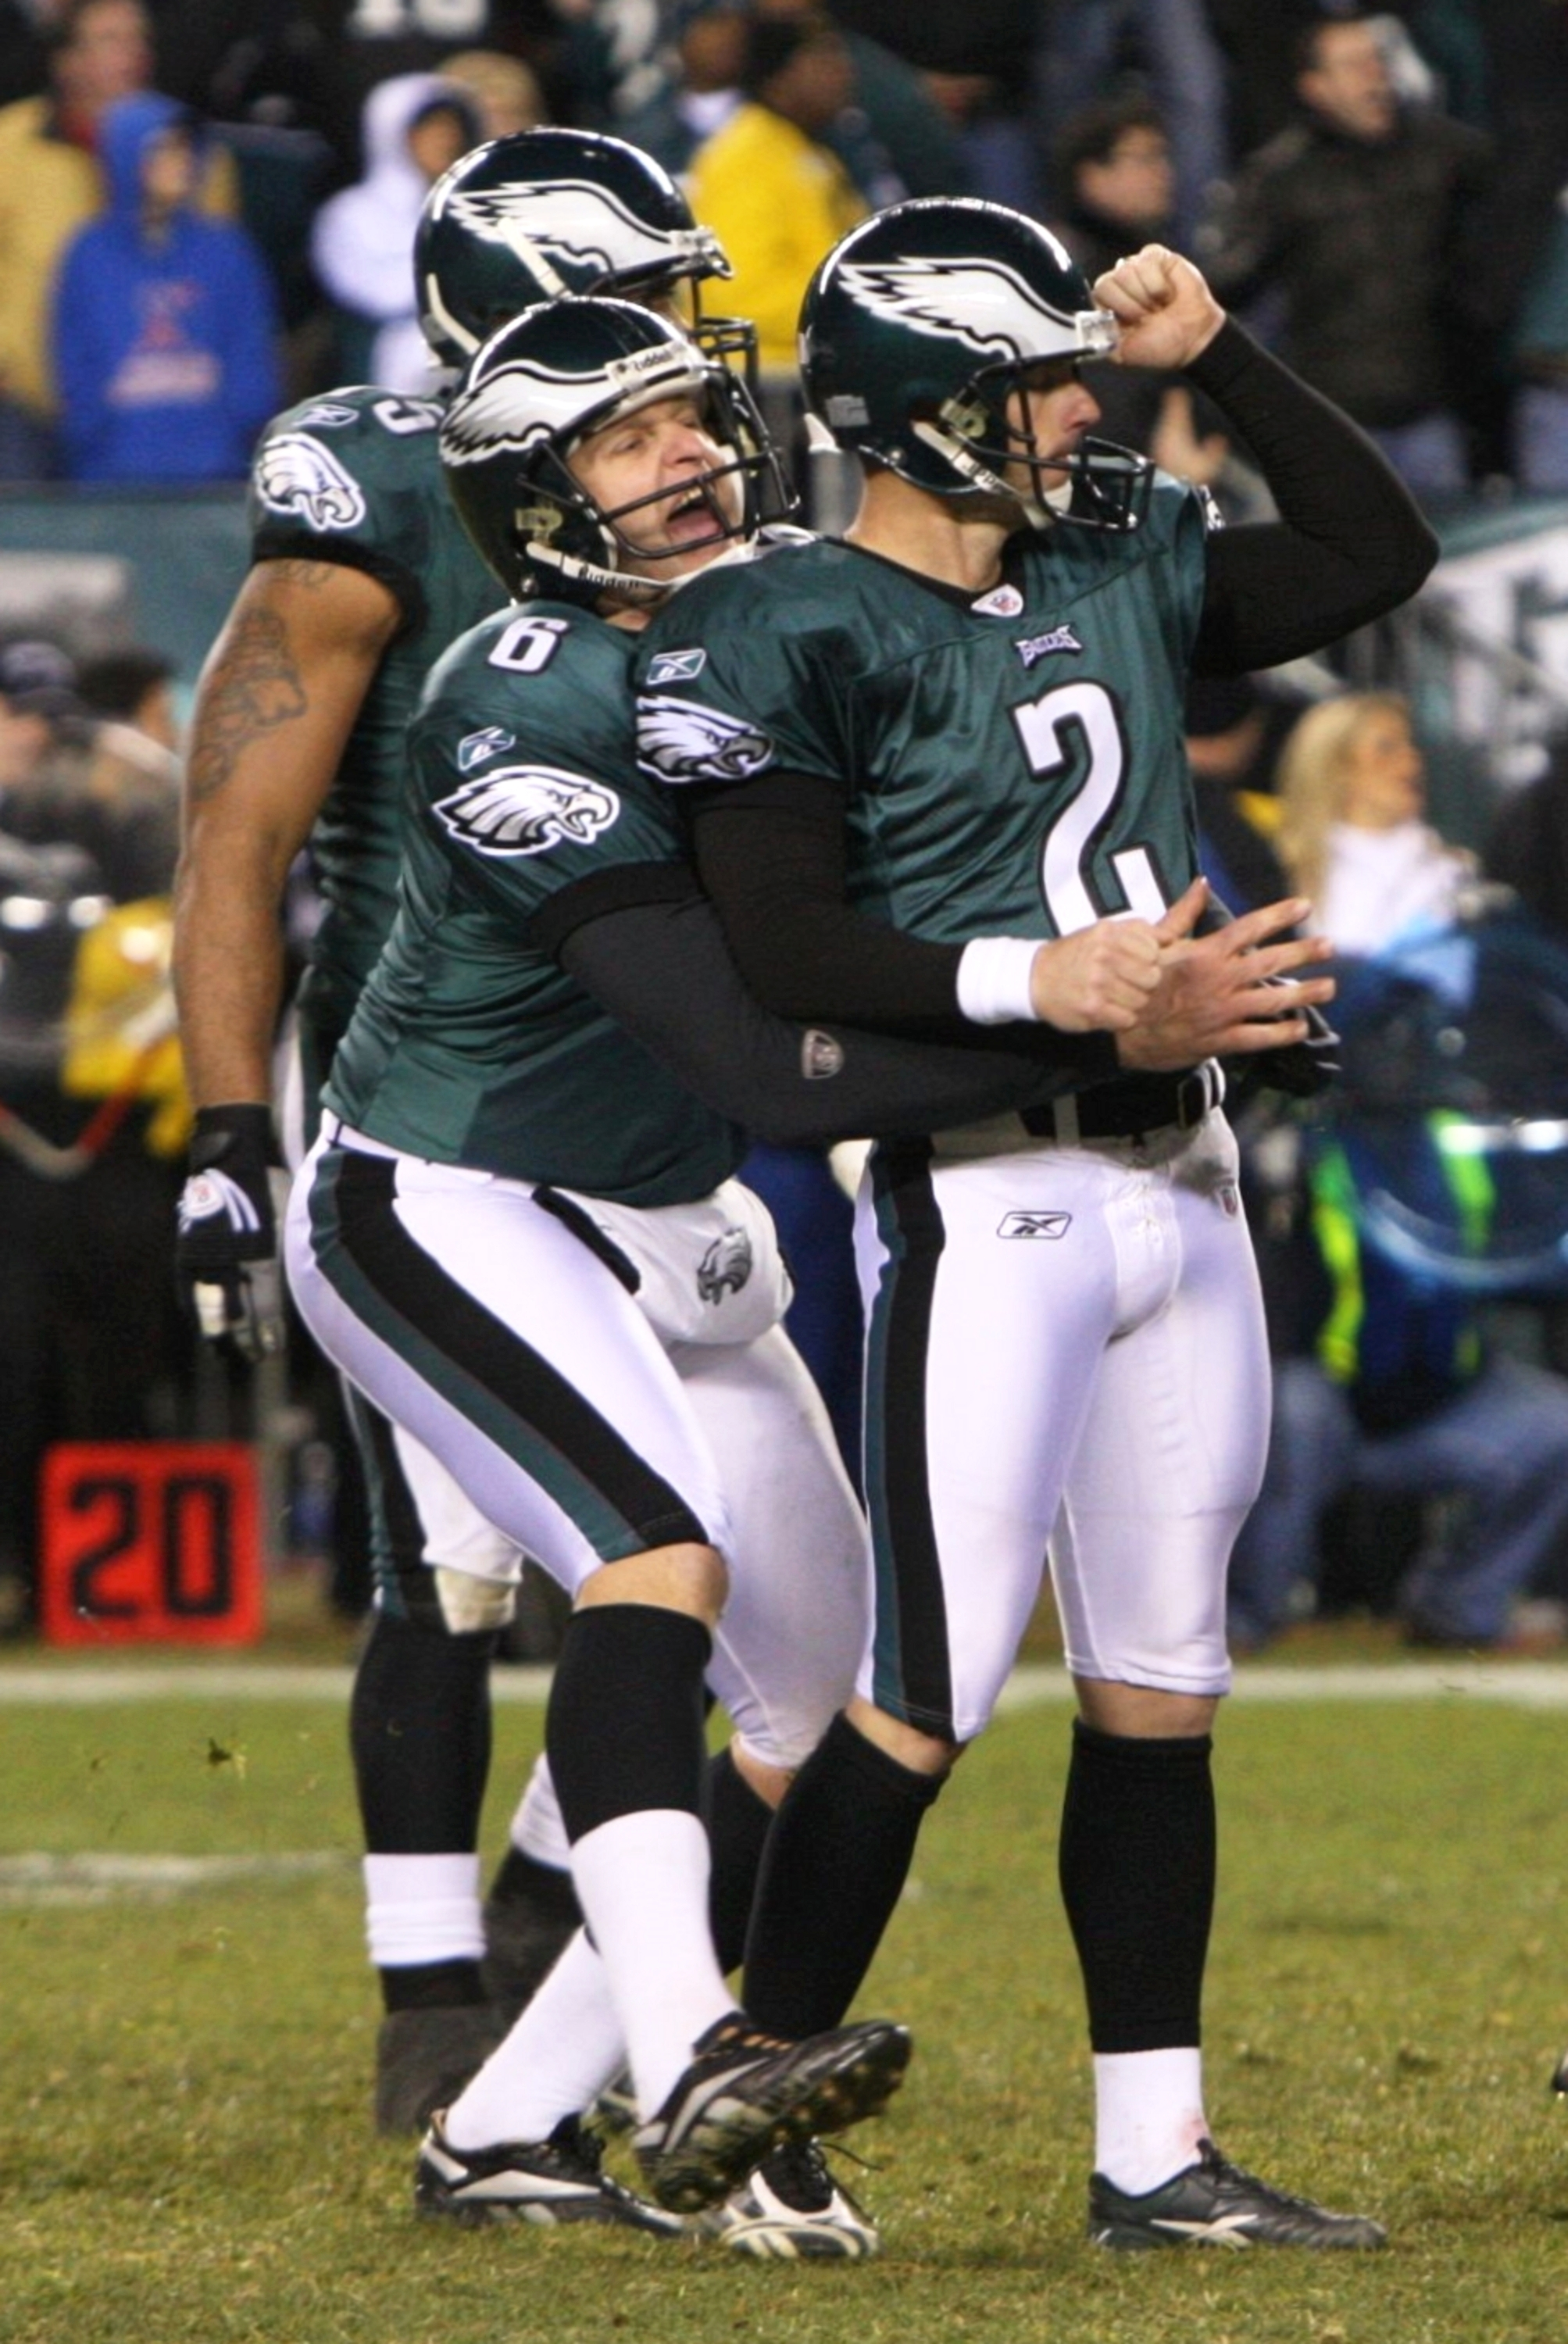 PHILADELPHIA - DECEMBER 27 : David Akers #2 of the Philadelphia Eagles gets lifted by teammate Sav Rocca #6 after kicking the game winning field goal against the Denver Broncos at Lincoln Financial Field on December 27, 2009 in Philadelphia, Pennsylvania.